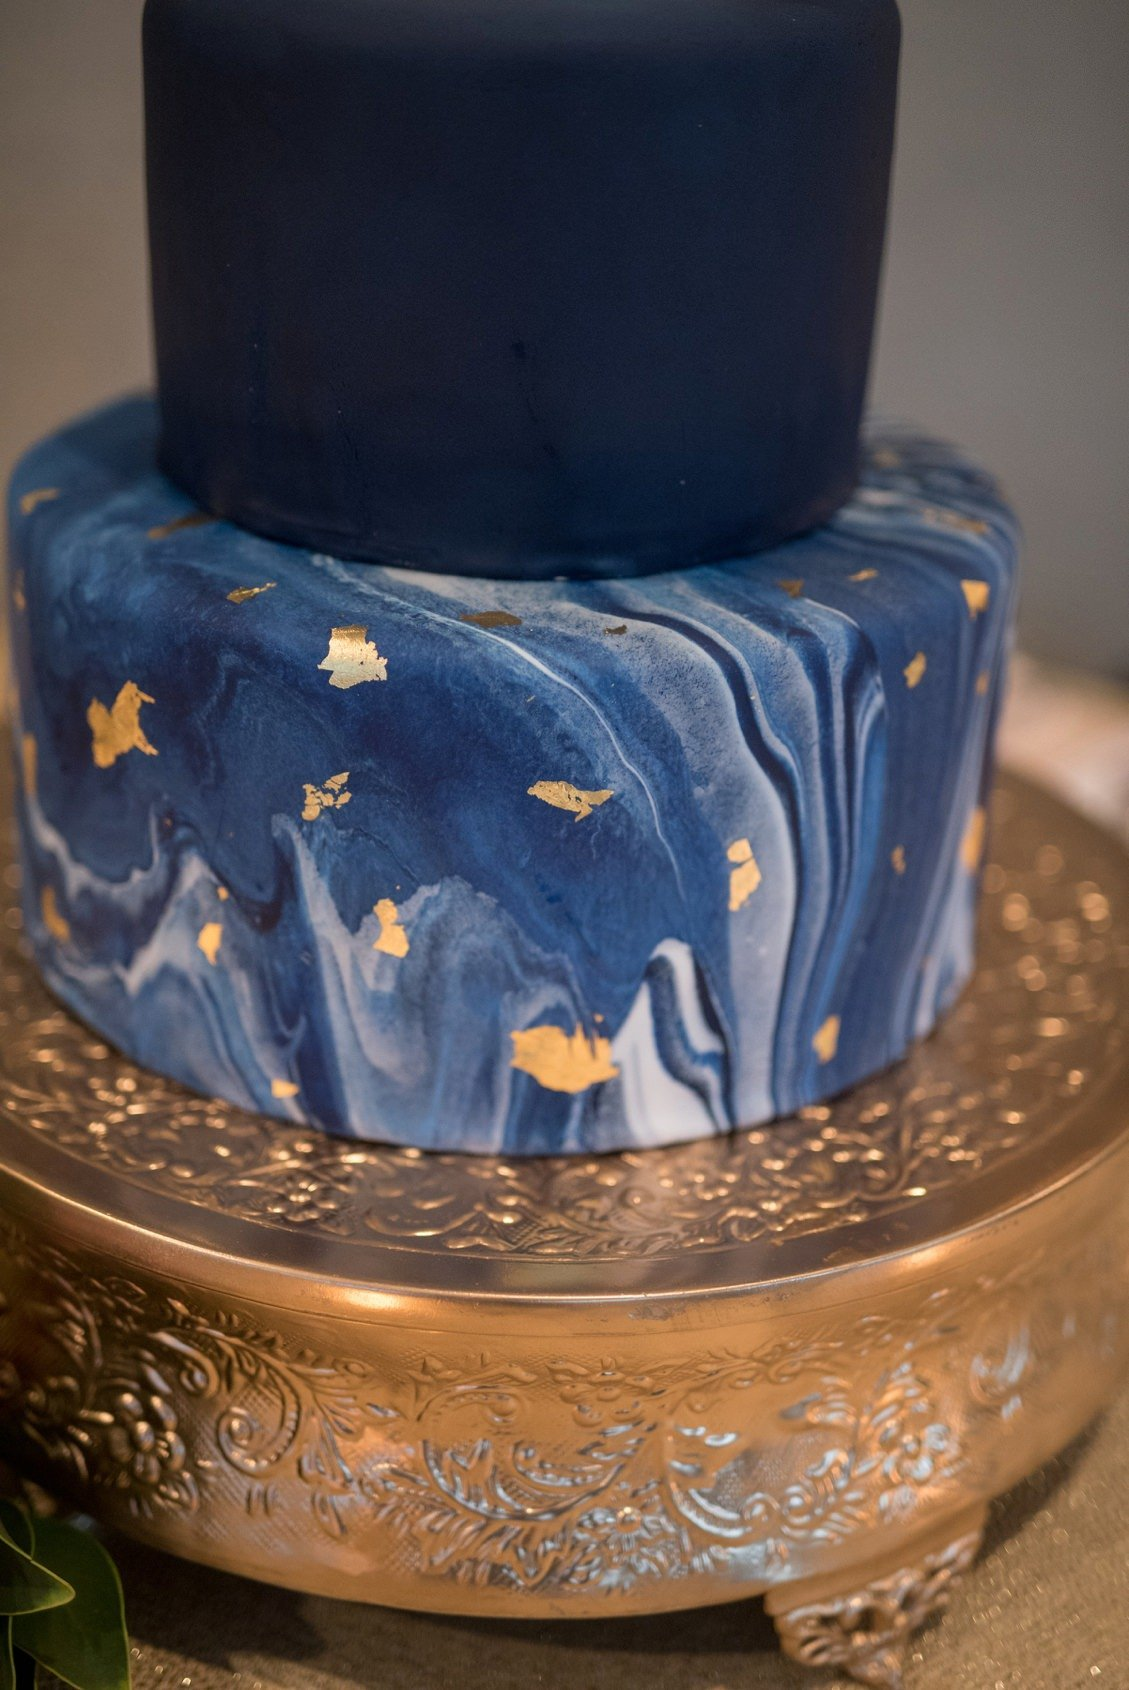 Blue, navy and white wedding cake with marble details and gold foil